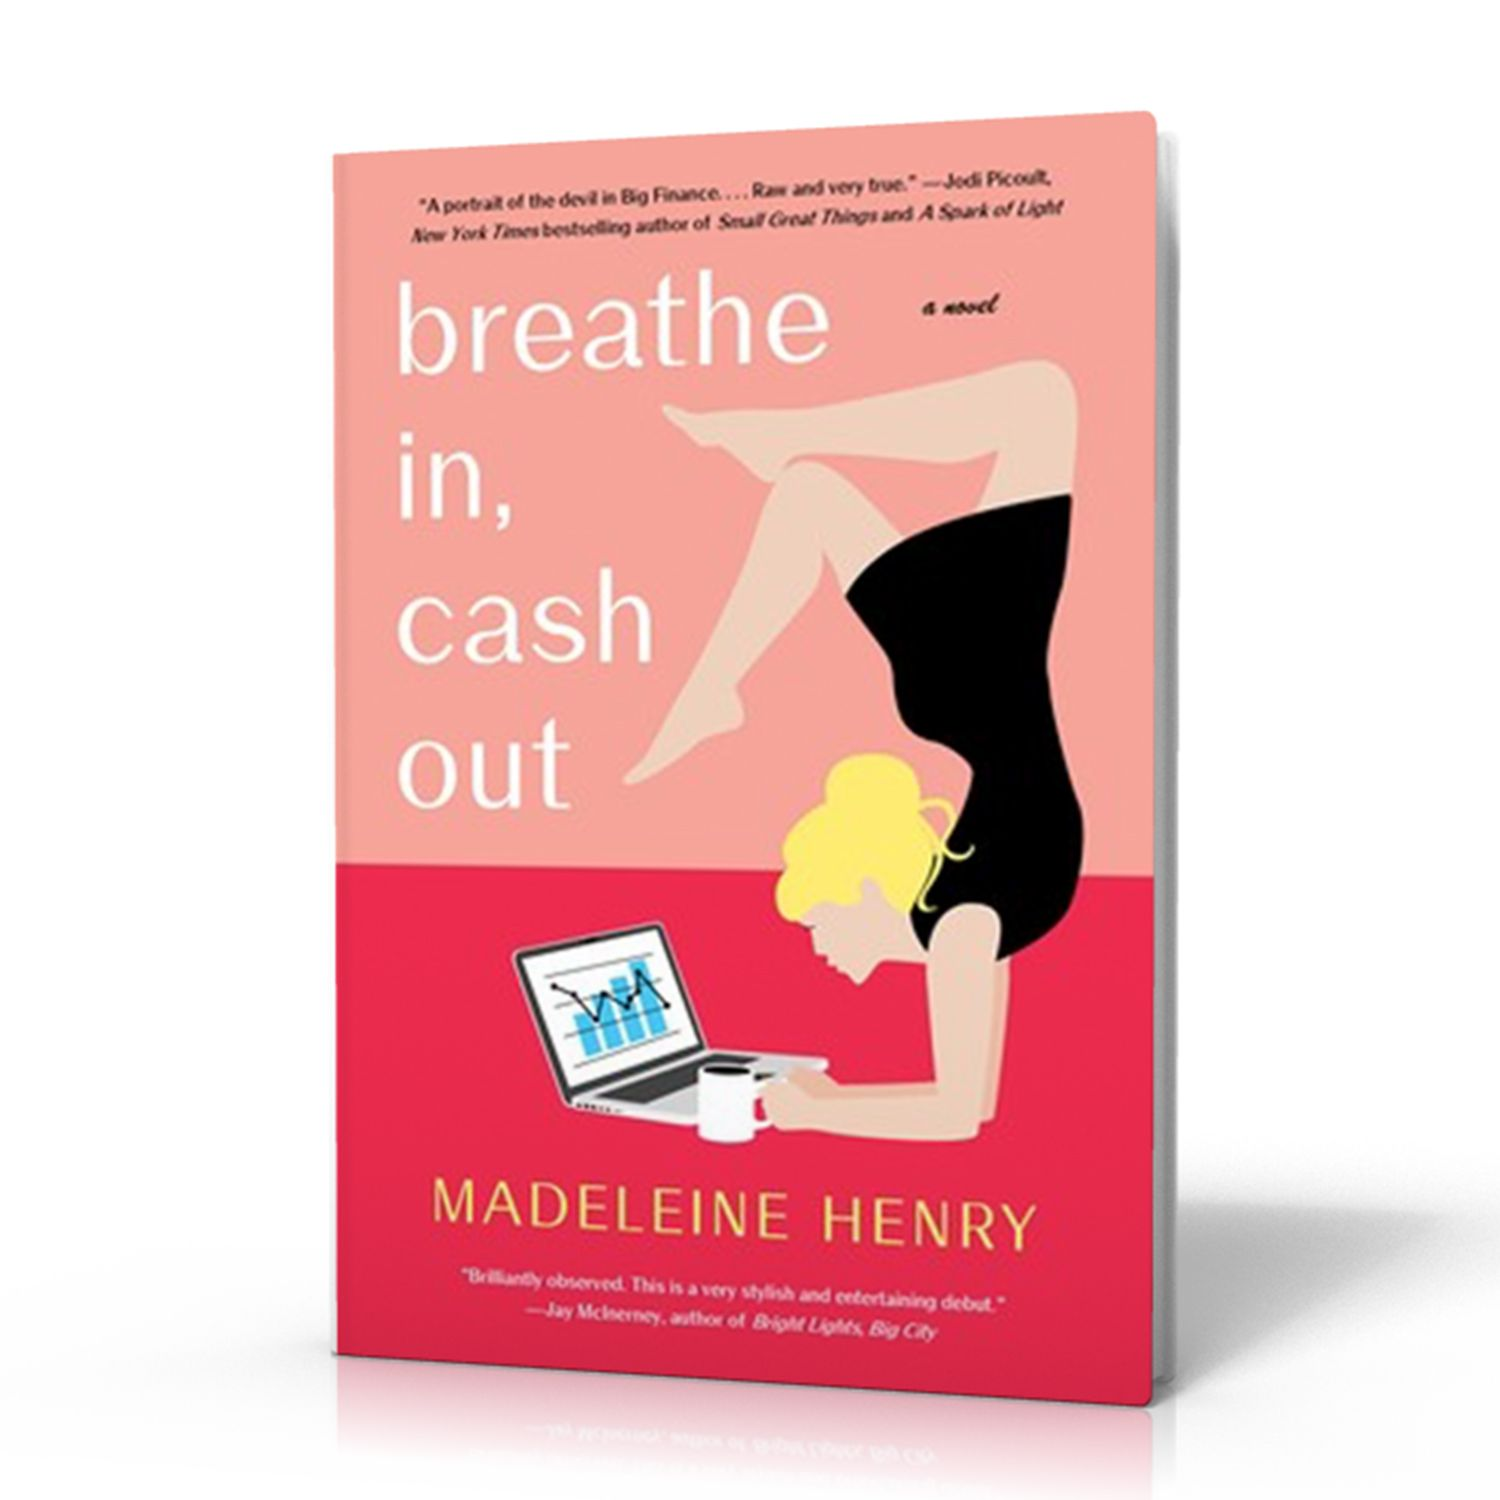 Best Podcasts for Entrepreneurs | Breathe in. Cash Out. Author Madeleine Henry on the Thrivetime Show Podcast